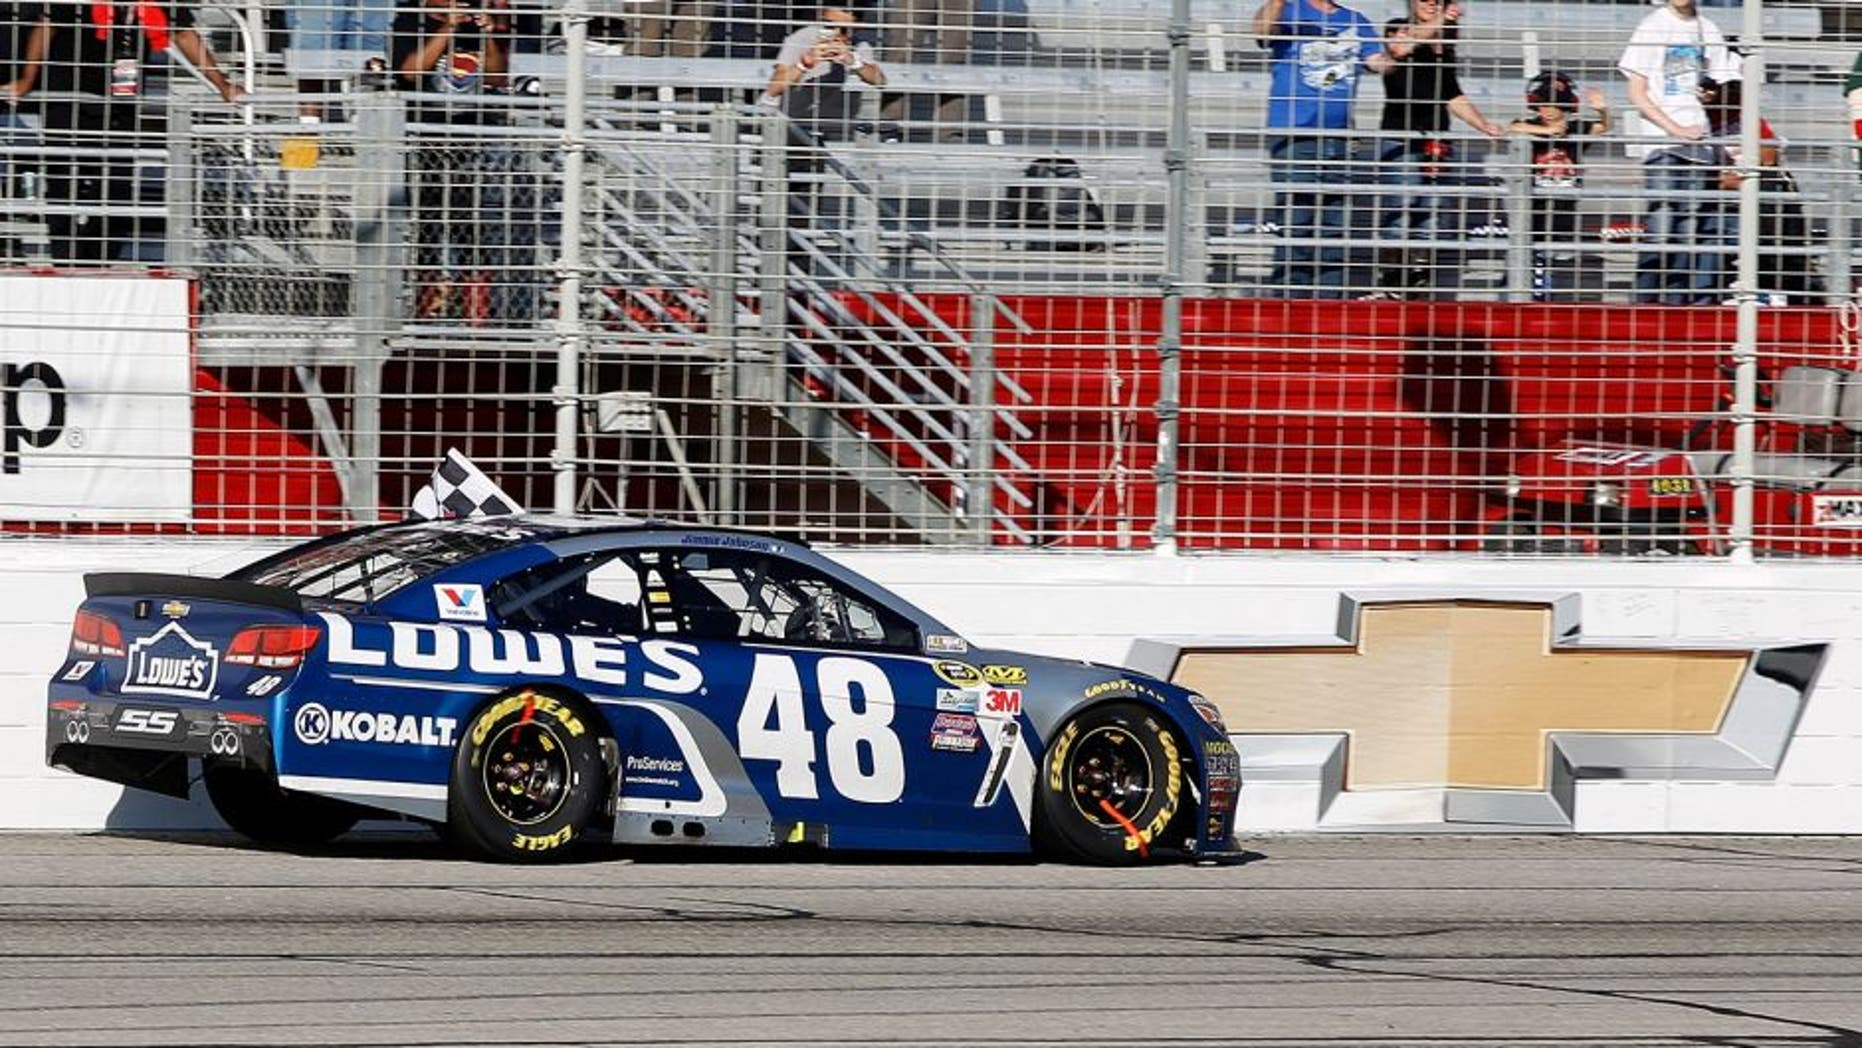 HAMPTON, GA - FEBRUARY 28: Jimmie Johnson, driver of the #48 Lowe's Chevrolet, celebrates with the checkered flag after winning the NASCAR Sprint Cup Series Folds of Honor QuikTrip 500 at Atlanta Motor Speedway on February 28, 2016 in Hampton, Georgia. (Photo by Brian Lawdermilk/Getty Images)